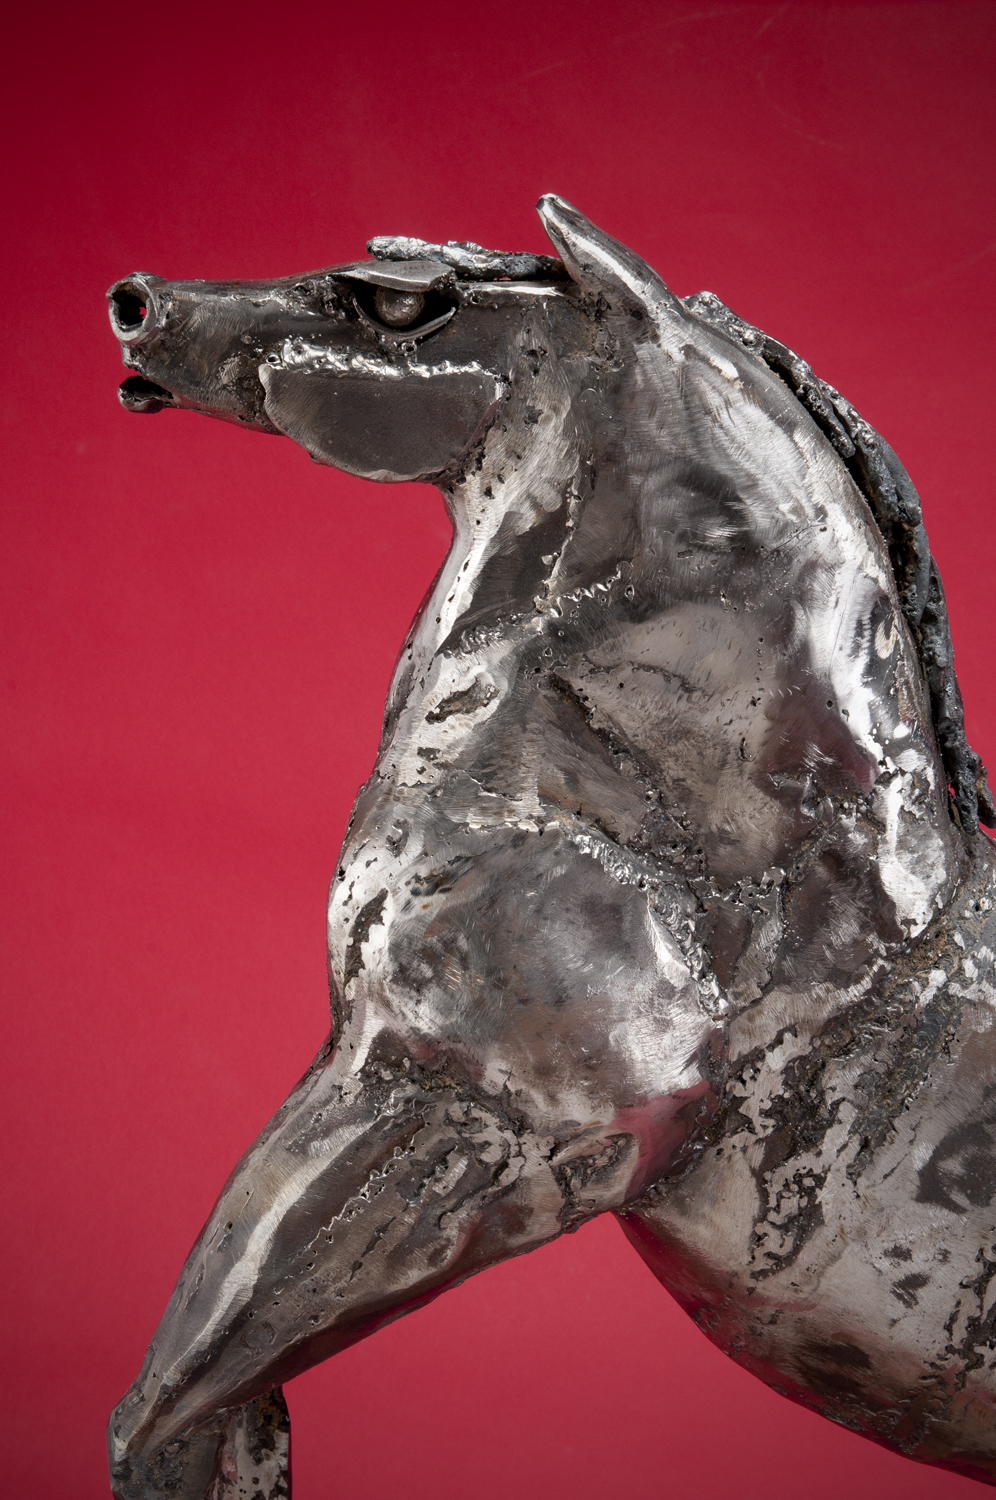 Horse Sculpture Blog Tolley Marney